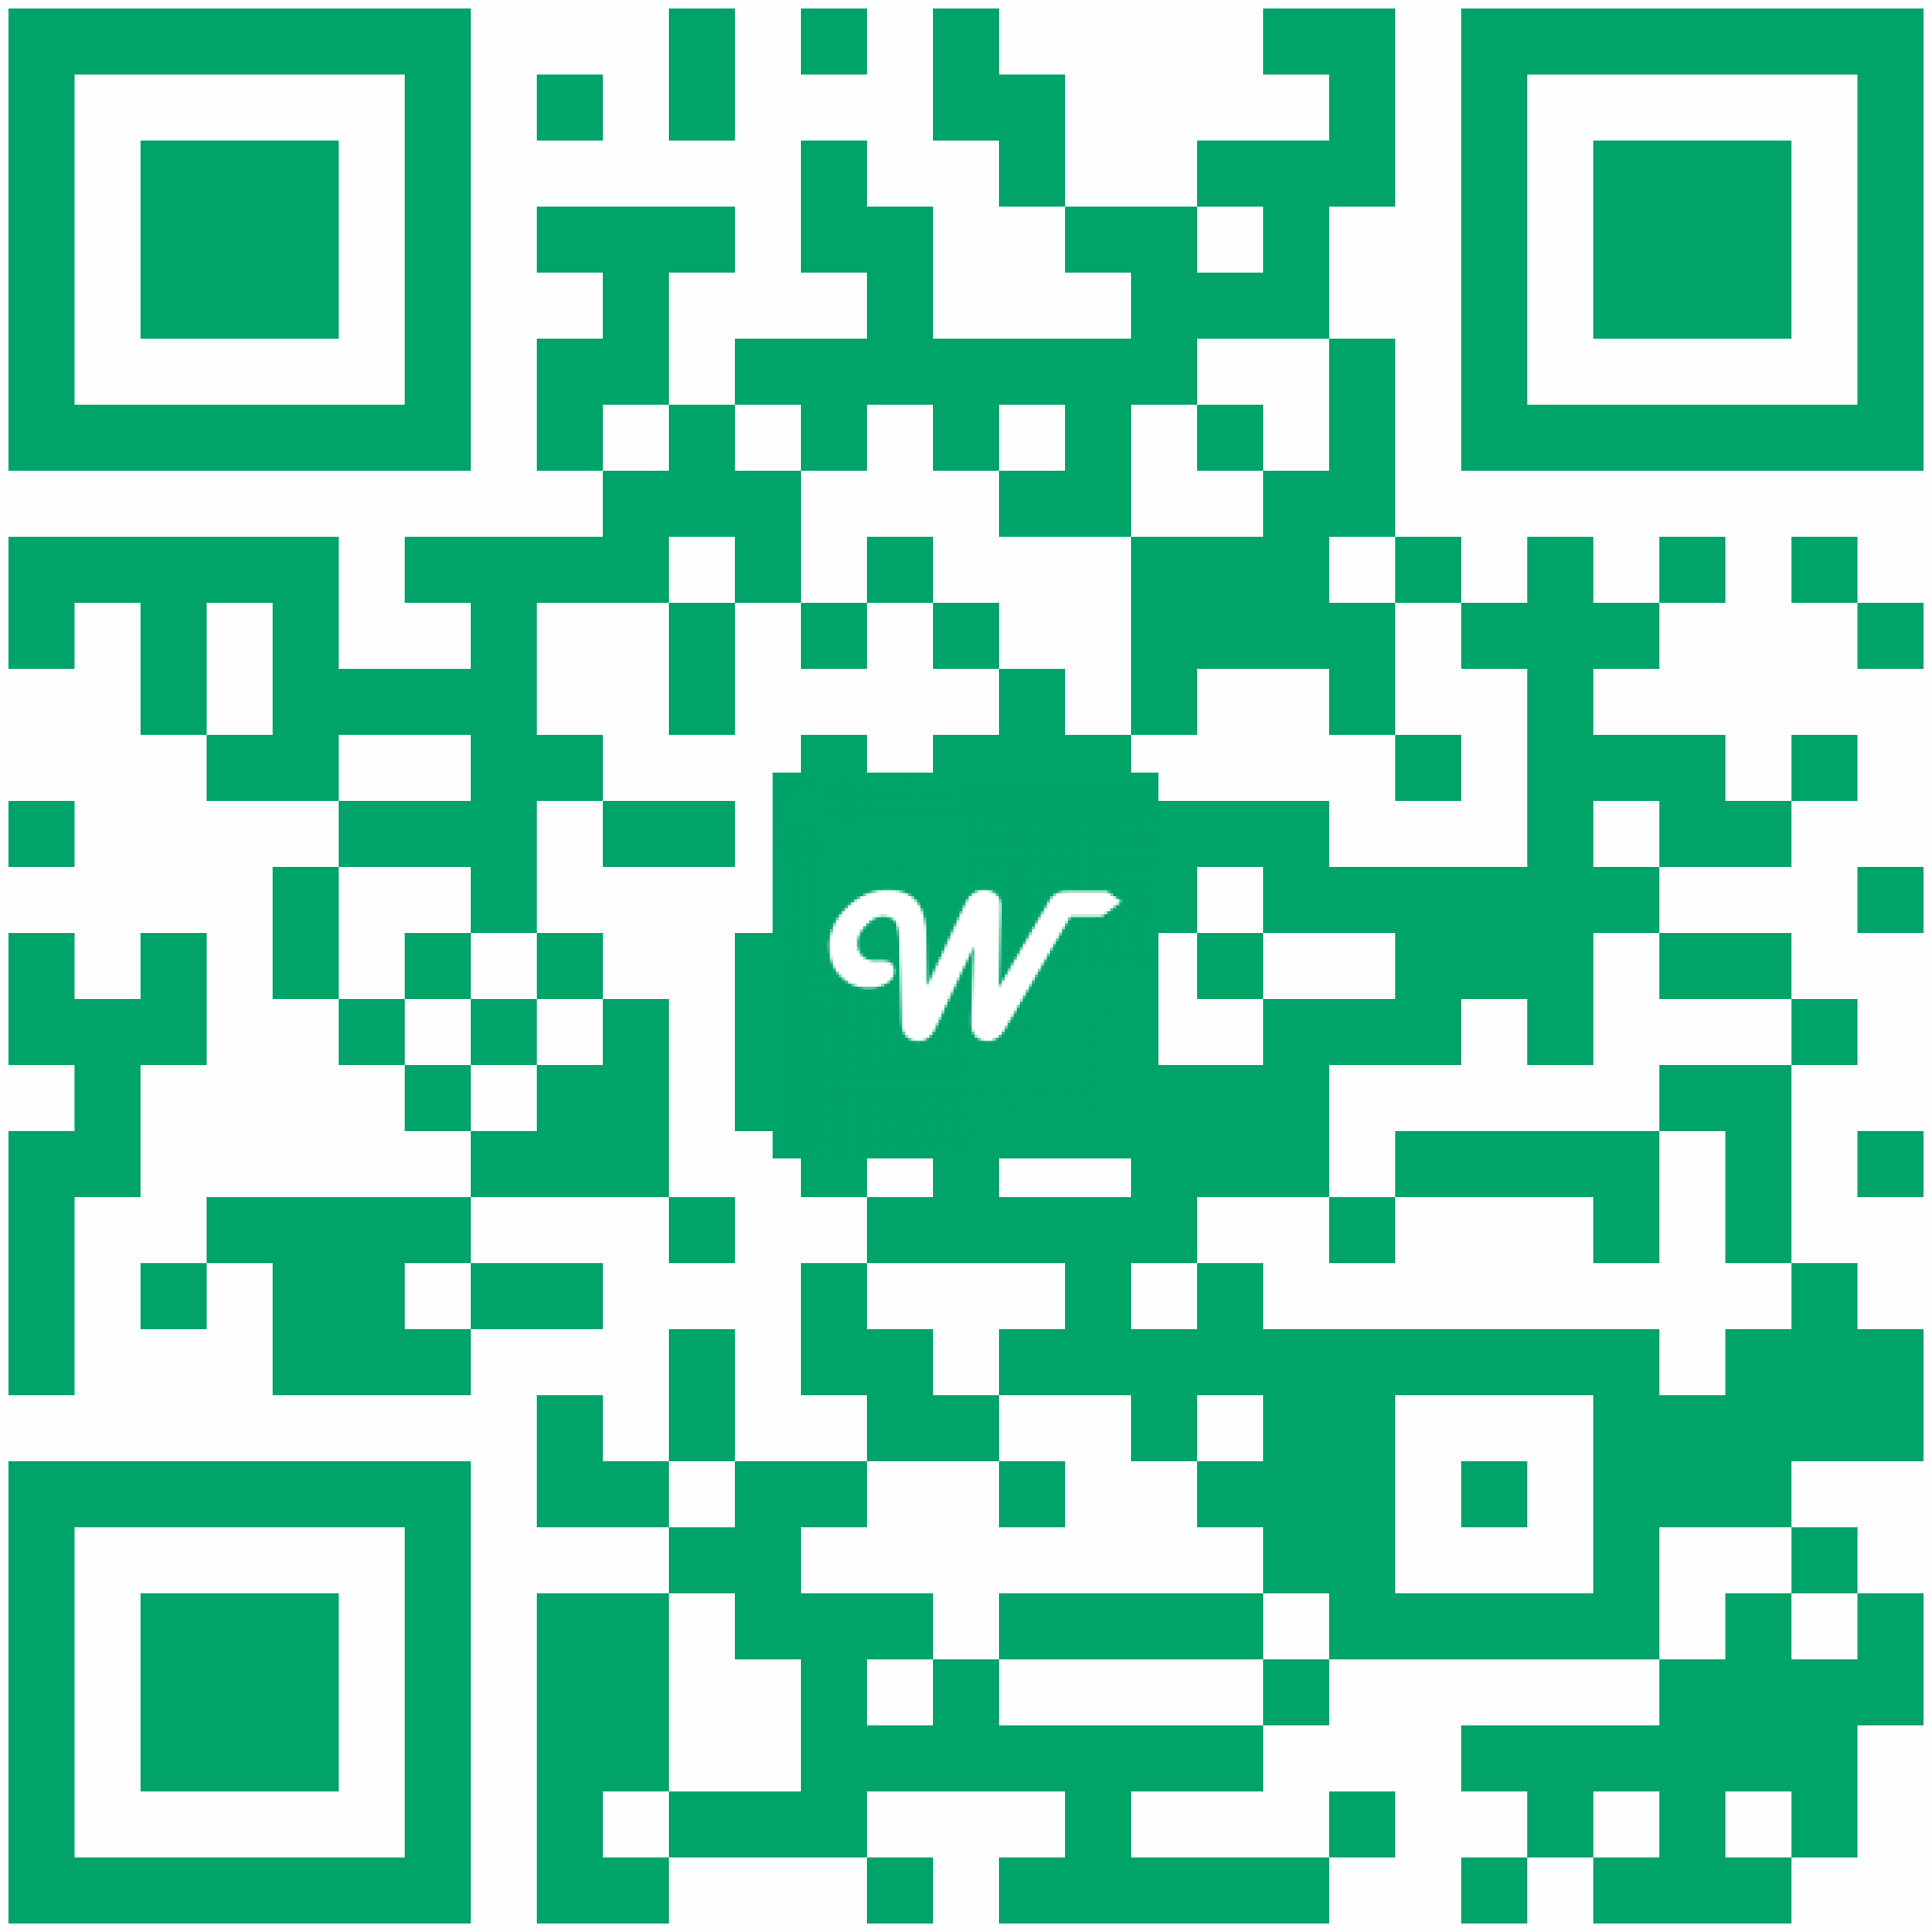 Printable QR code for 9.937274,-84.146862